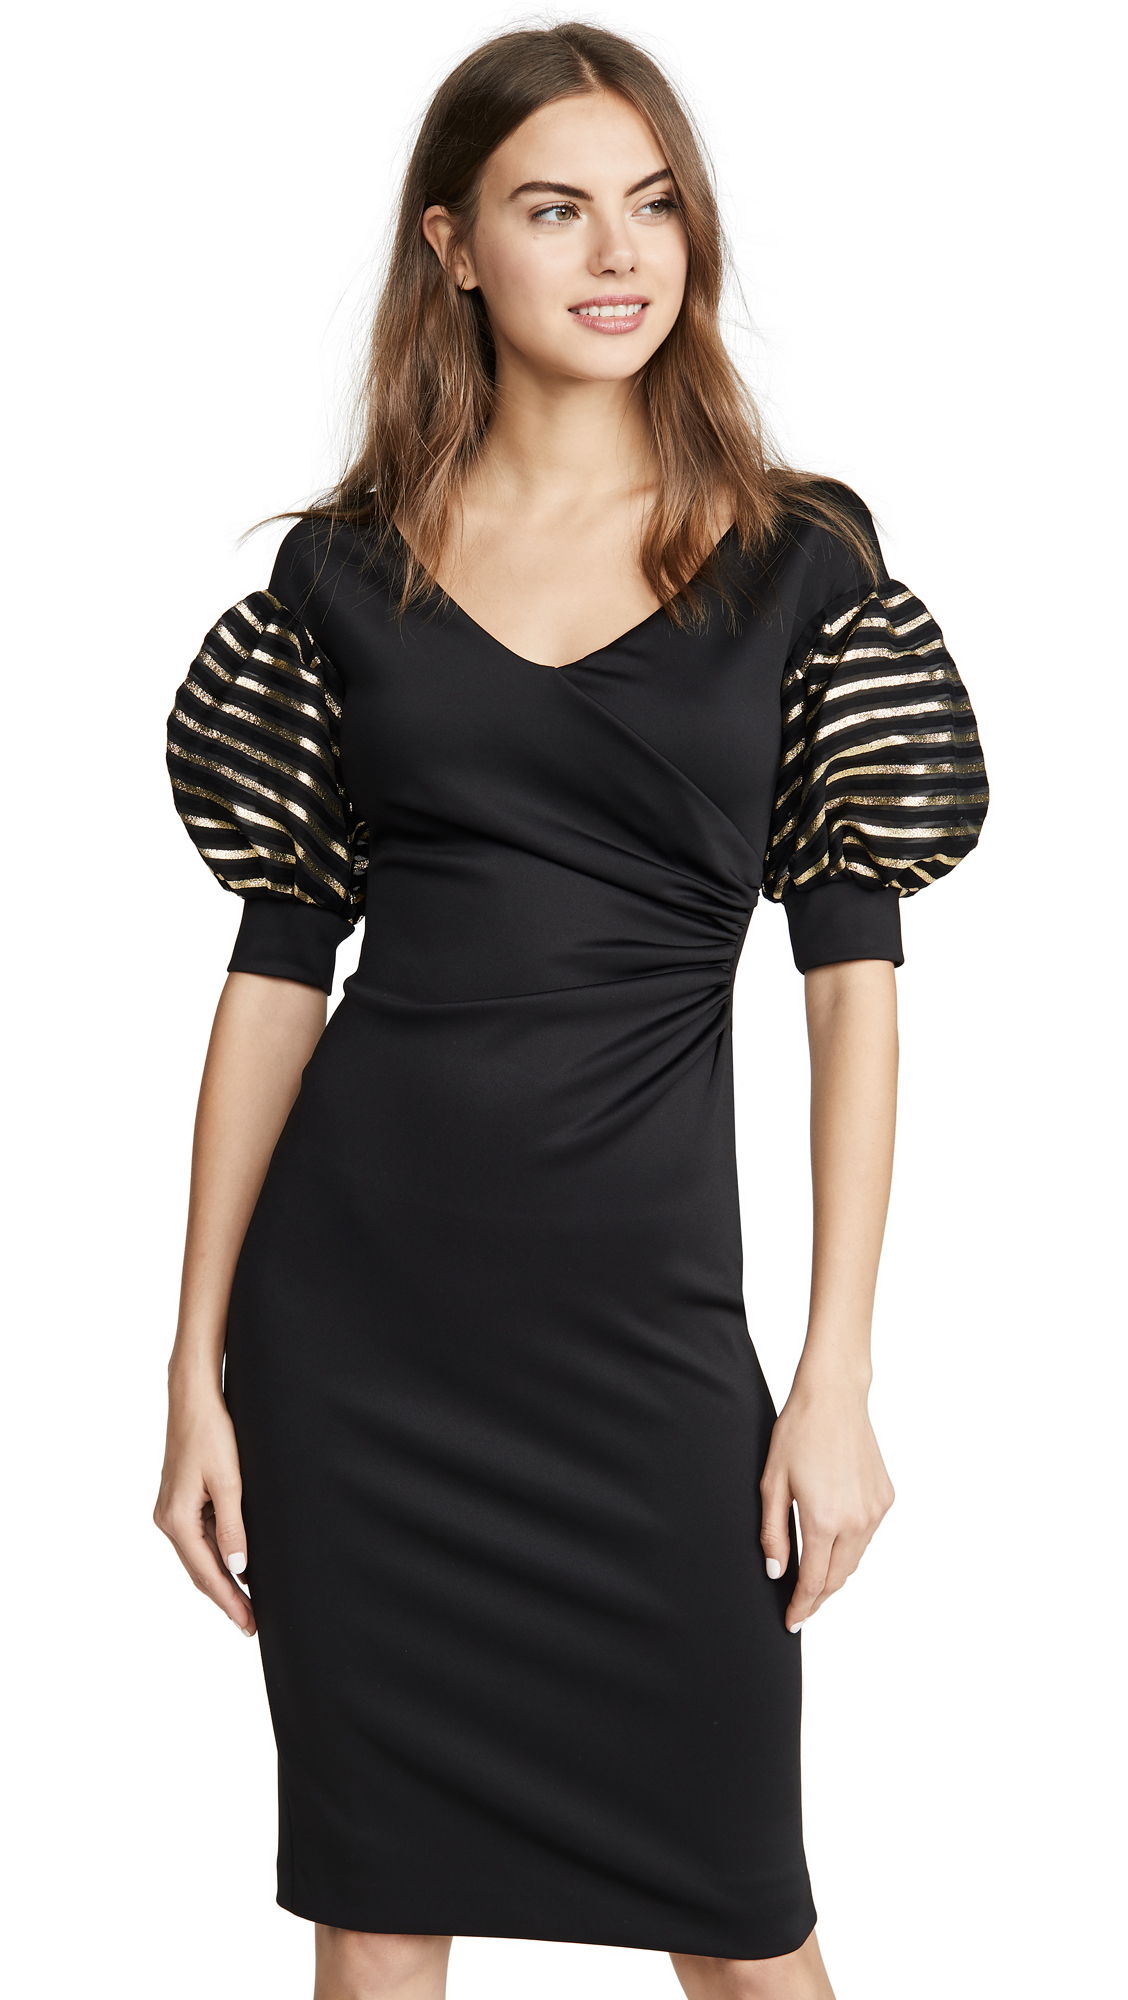 Black Halo Elora Cocktail Sheath Dress - 50% Off Sale